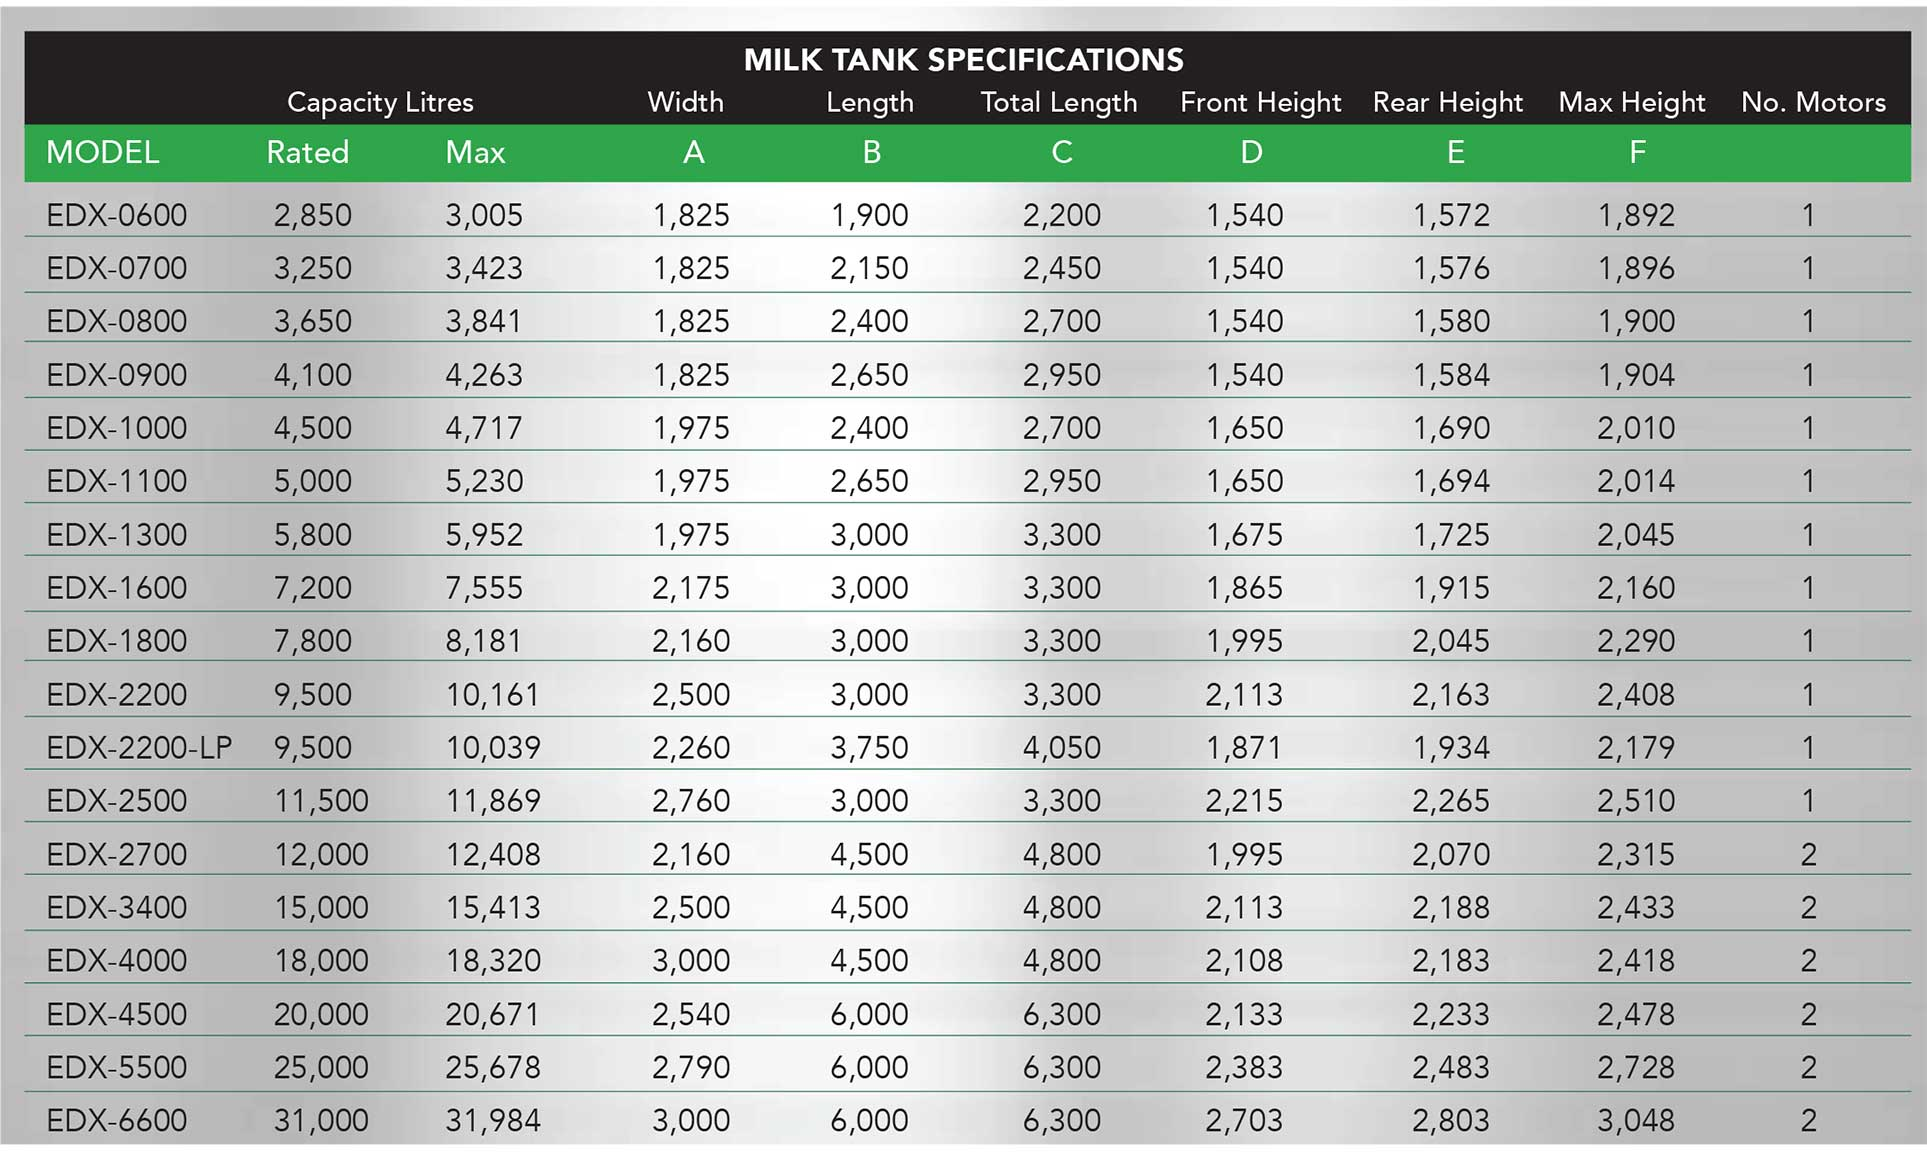 Milk Tanks Specification